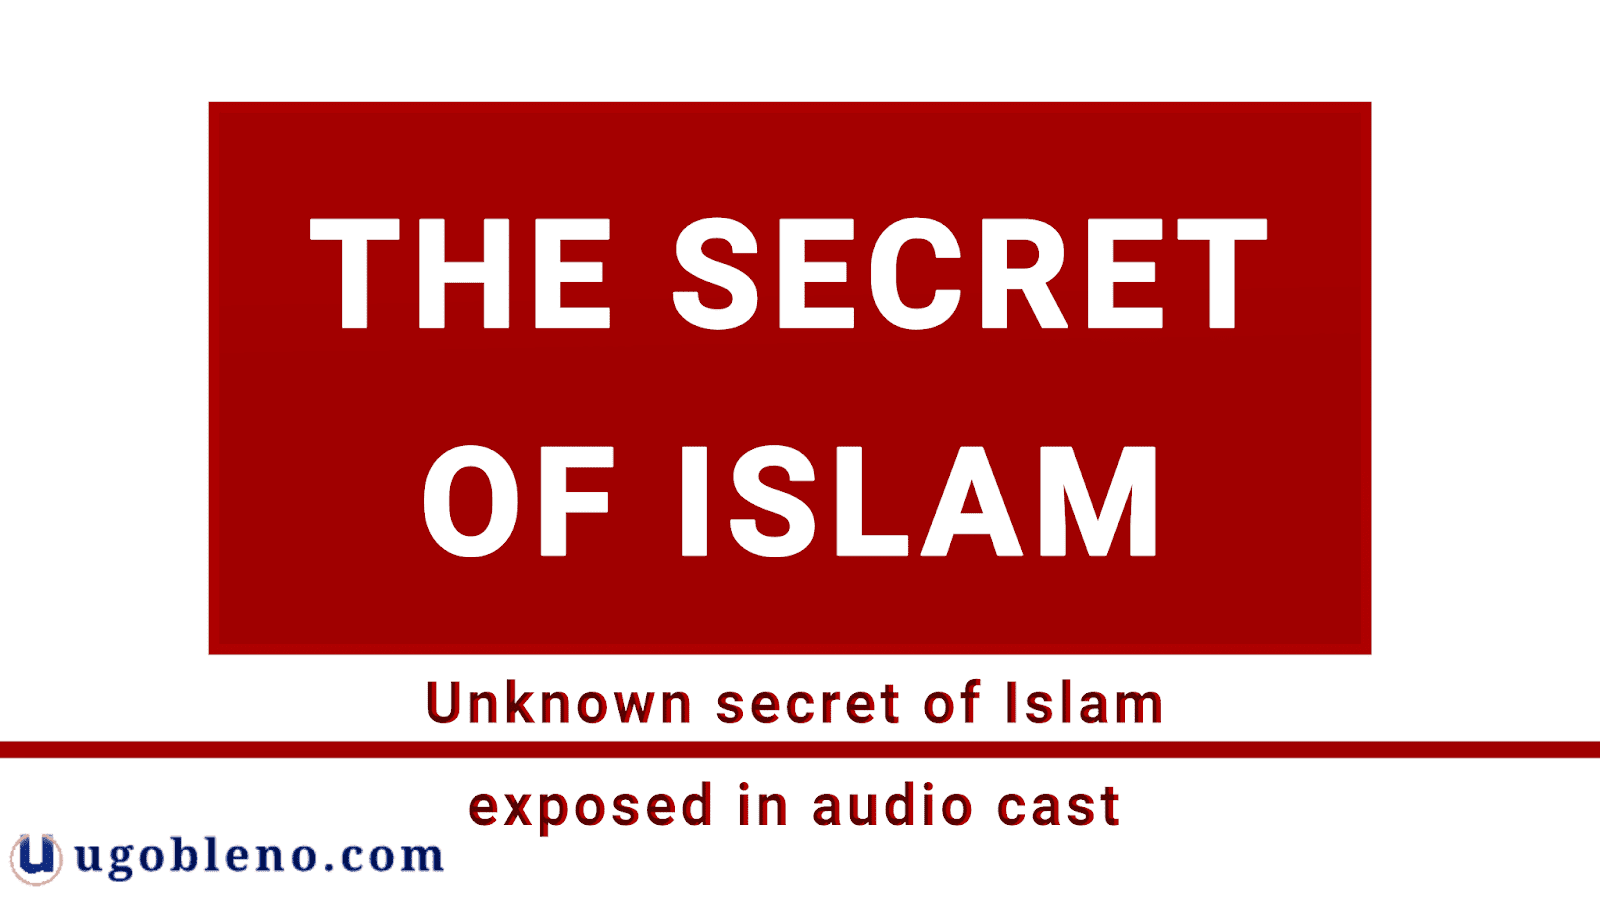 The greatest secret of Islam is revealed, disclosing the untold stories of Muslim and their top secrets. Several generations of Islamists Muslim have developed the historical-critical study of the Koran and the origin of Islam, obtaining different results from traditional Muslim historiography. The great secret of Islam is unknown to Muslims and Christians as well.